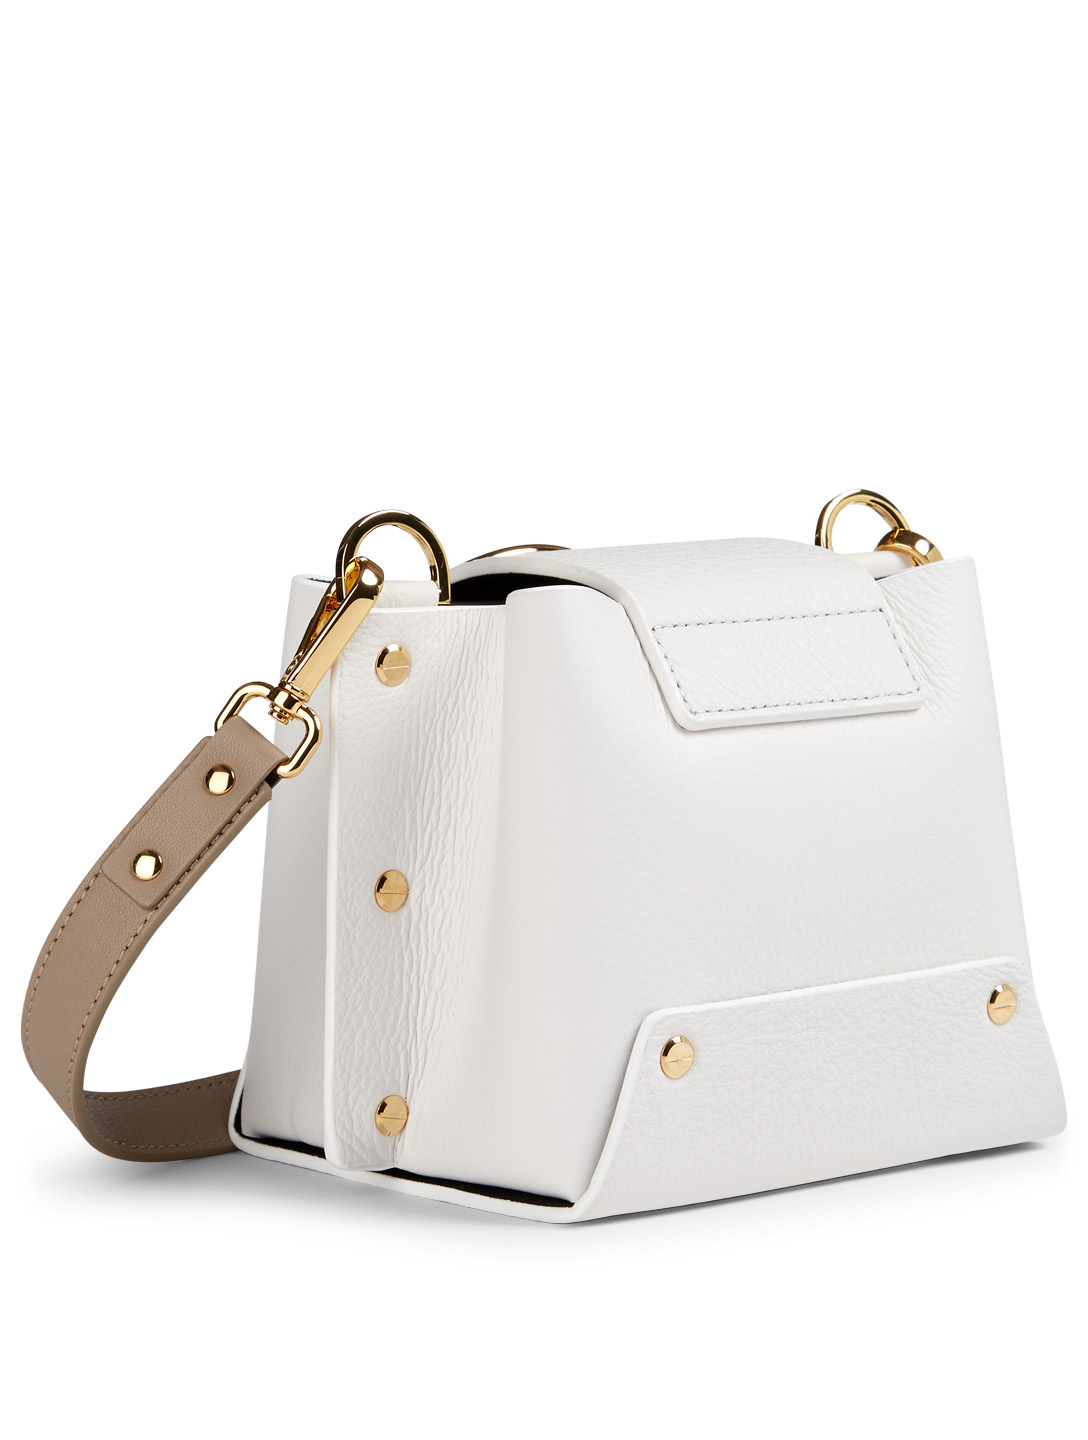 YUZEFI Mini Delila Leather Crossbody Bag Women's White